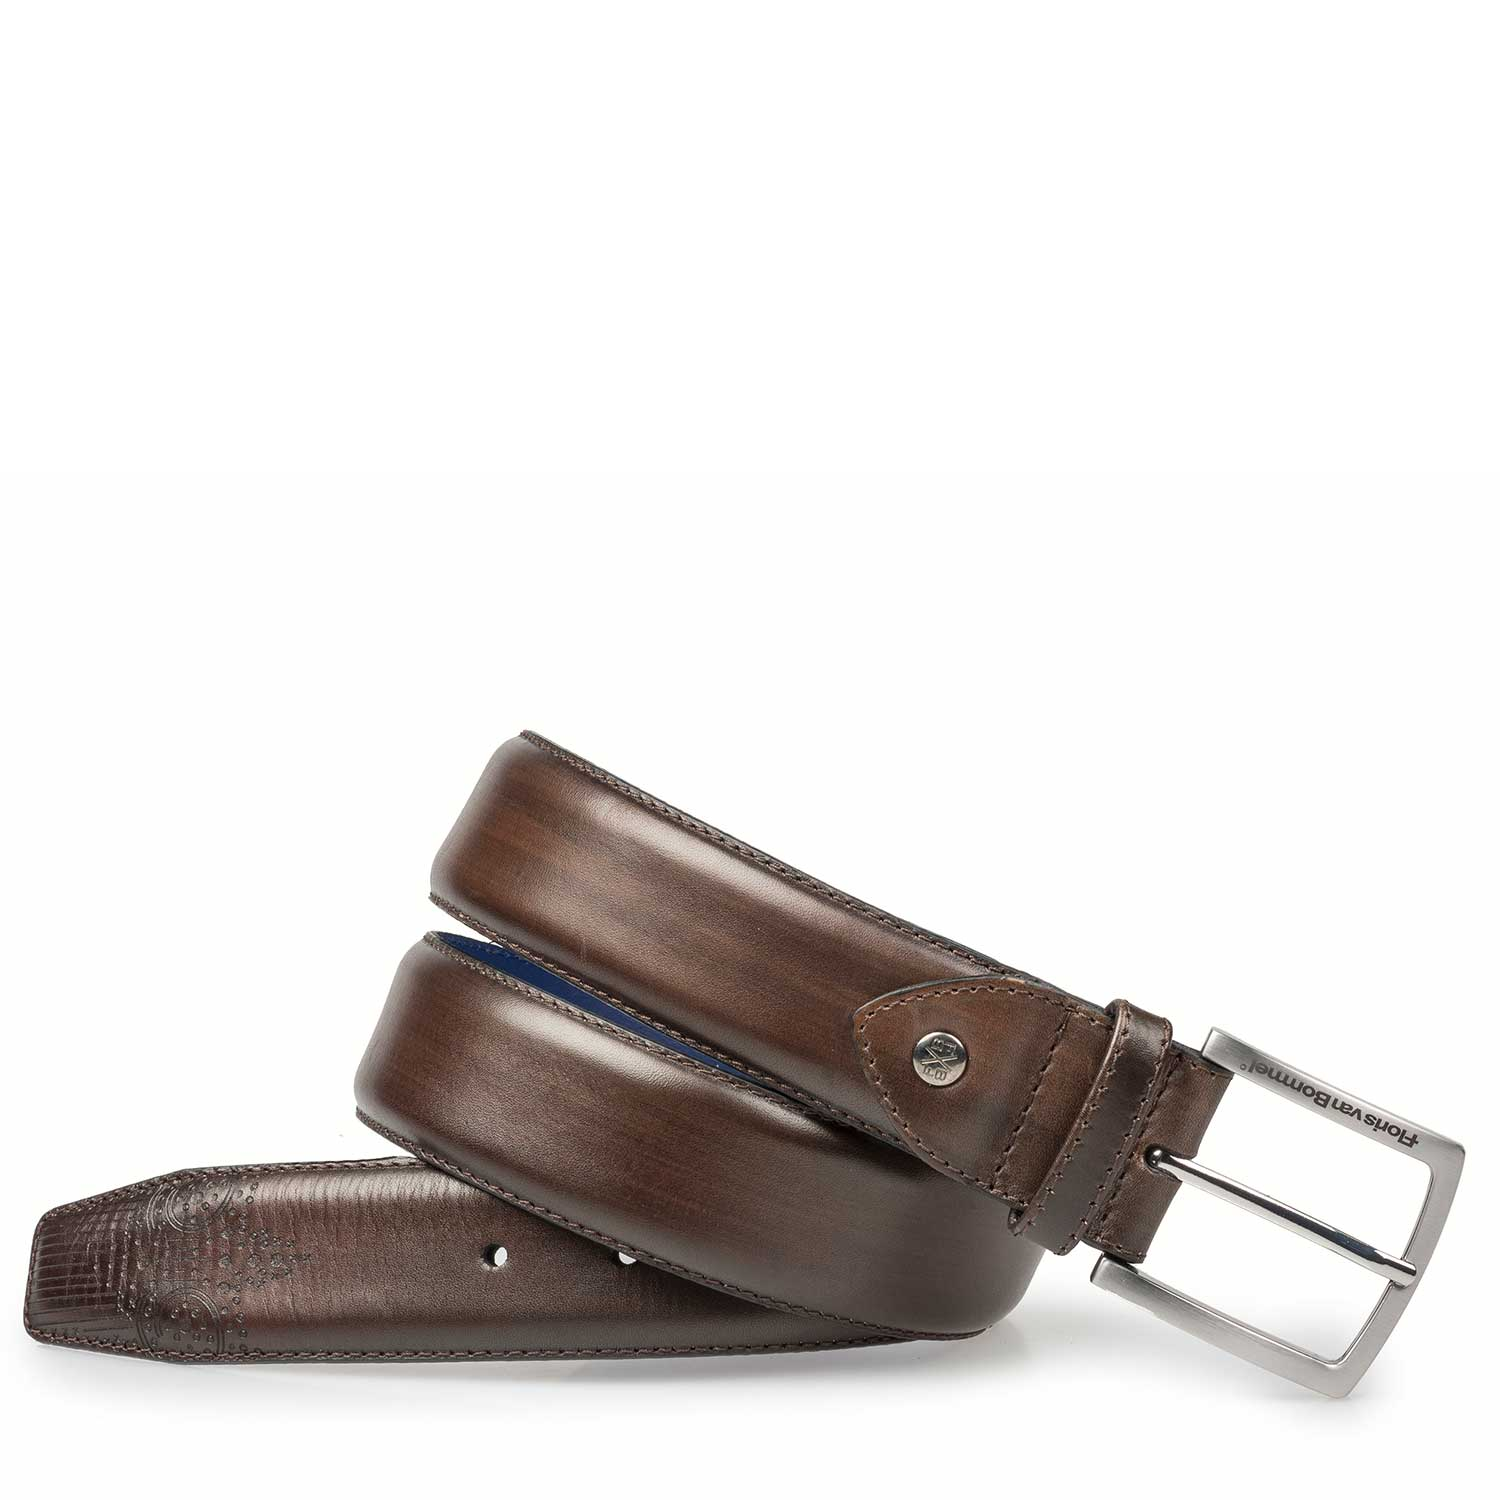 75185/02 - Brown brogue calf's leather belt